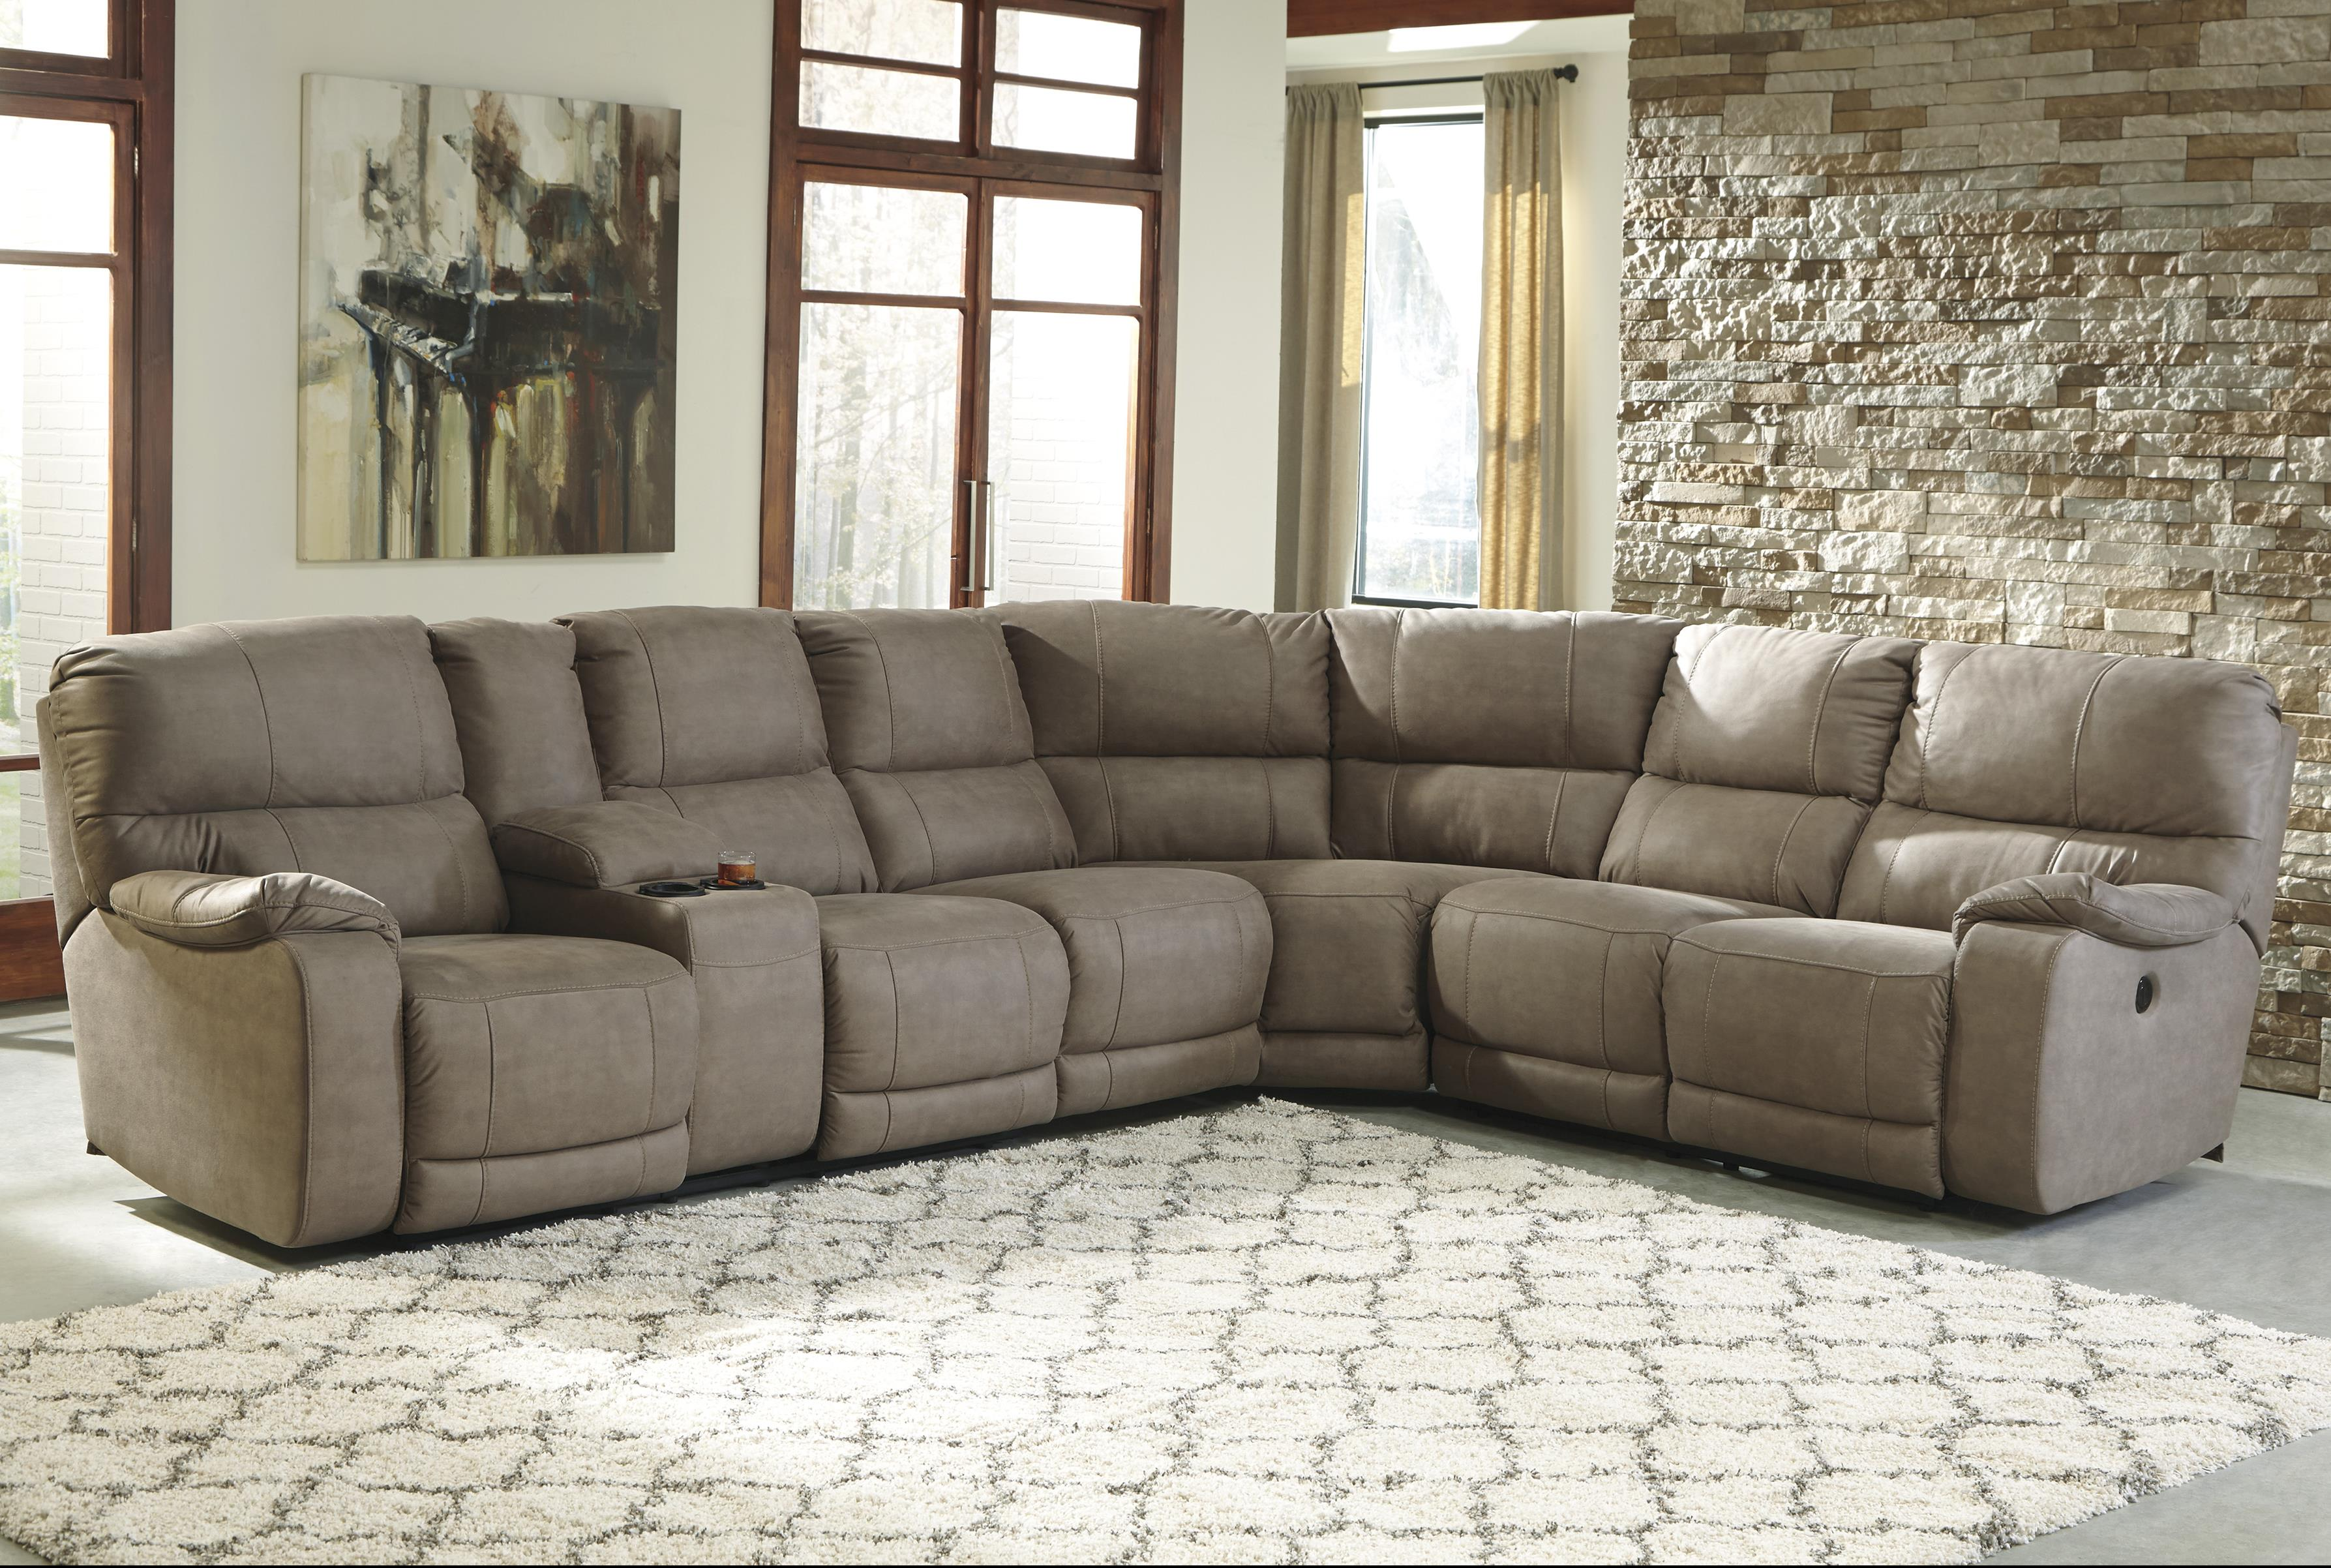 Benchcraft Bohannon Power Reclining Sectional with Console - Item Number: 5740301+46+77+75